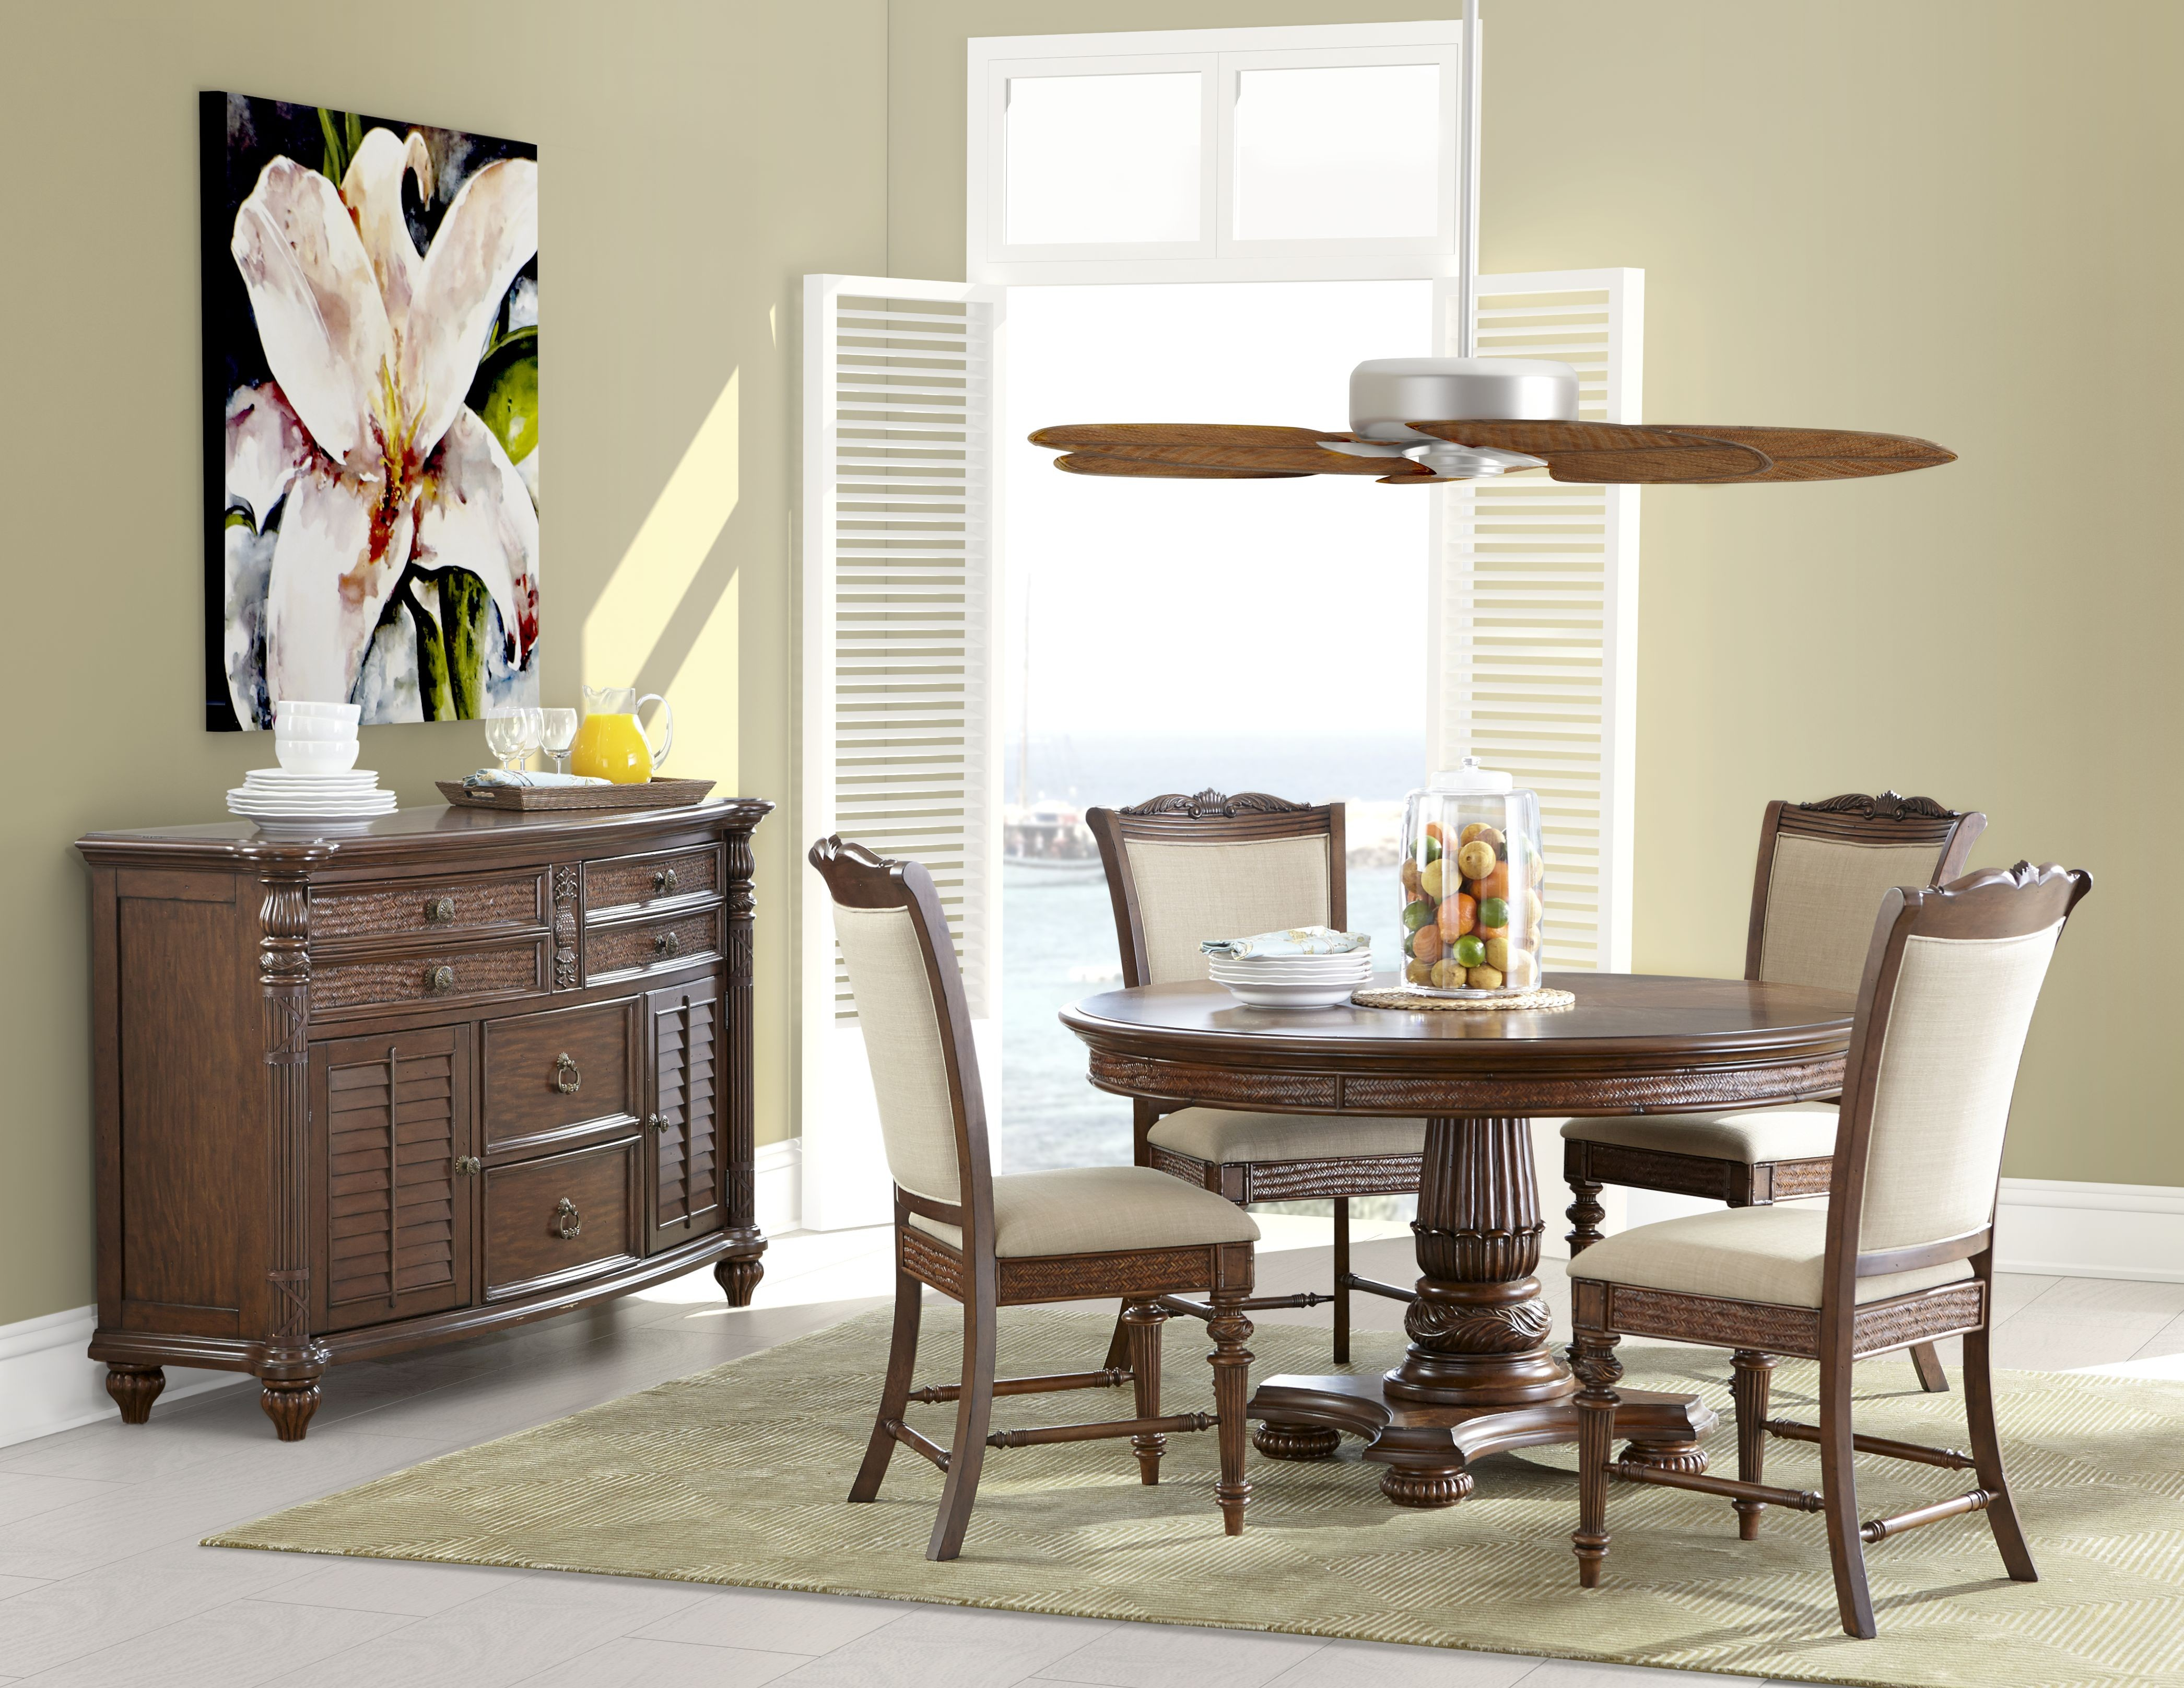 key west chairs hd brow chair upholstered dining side set of 2 d3069 63